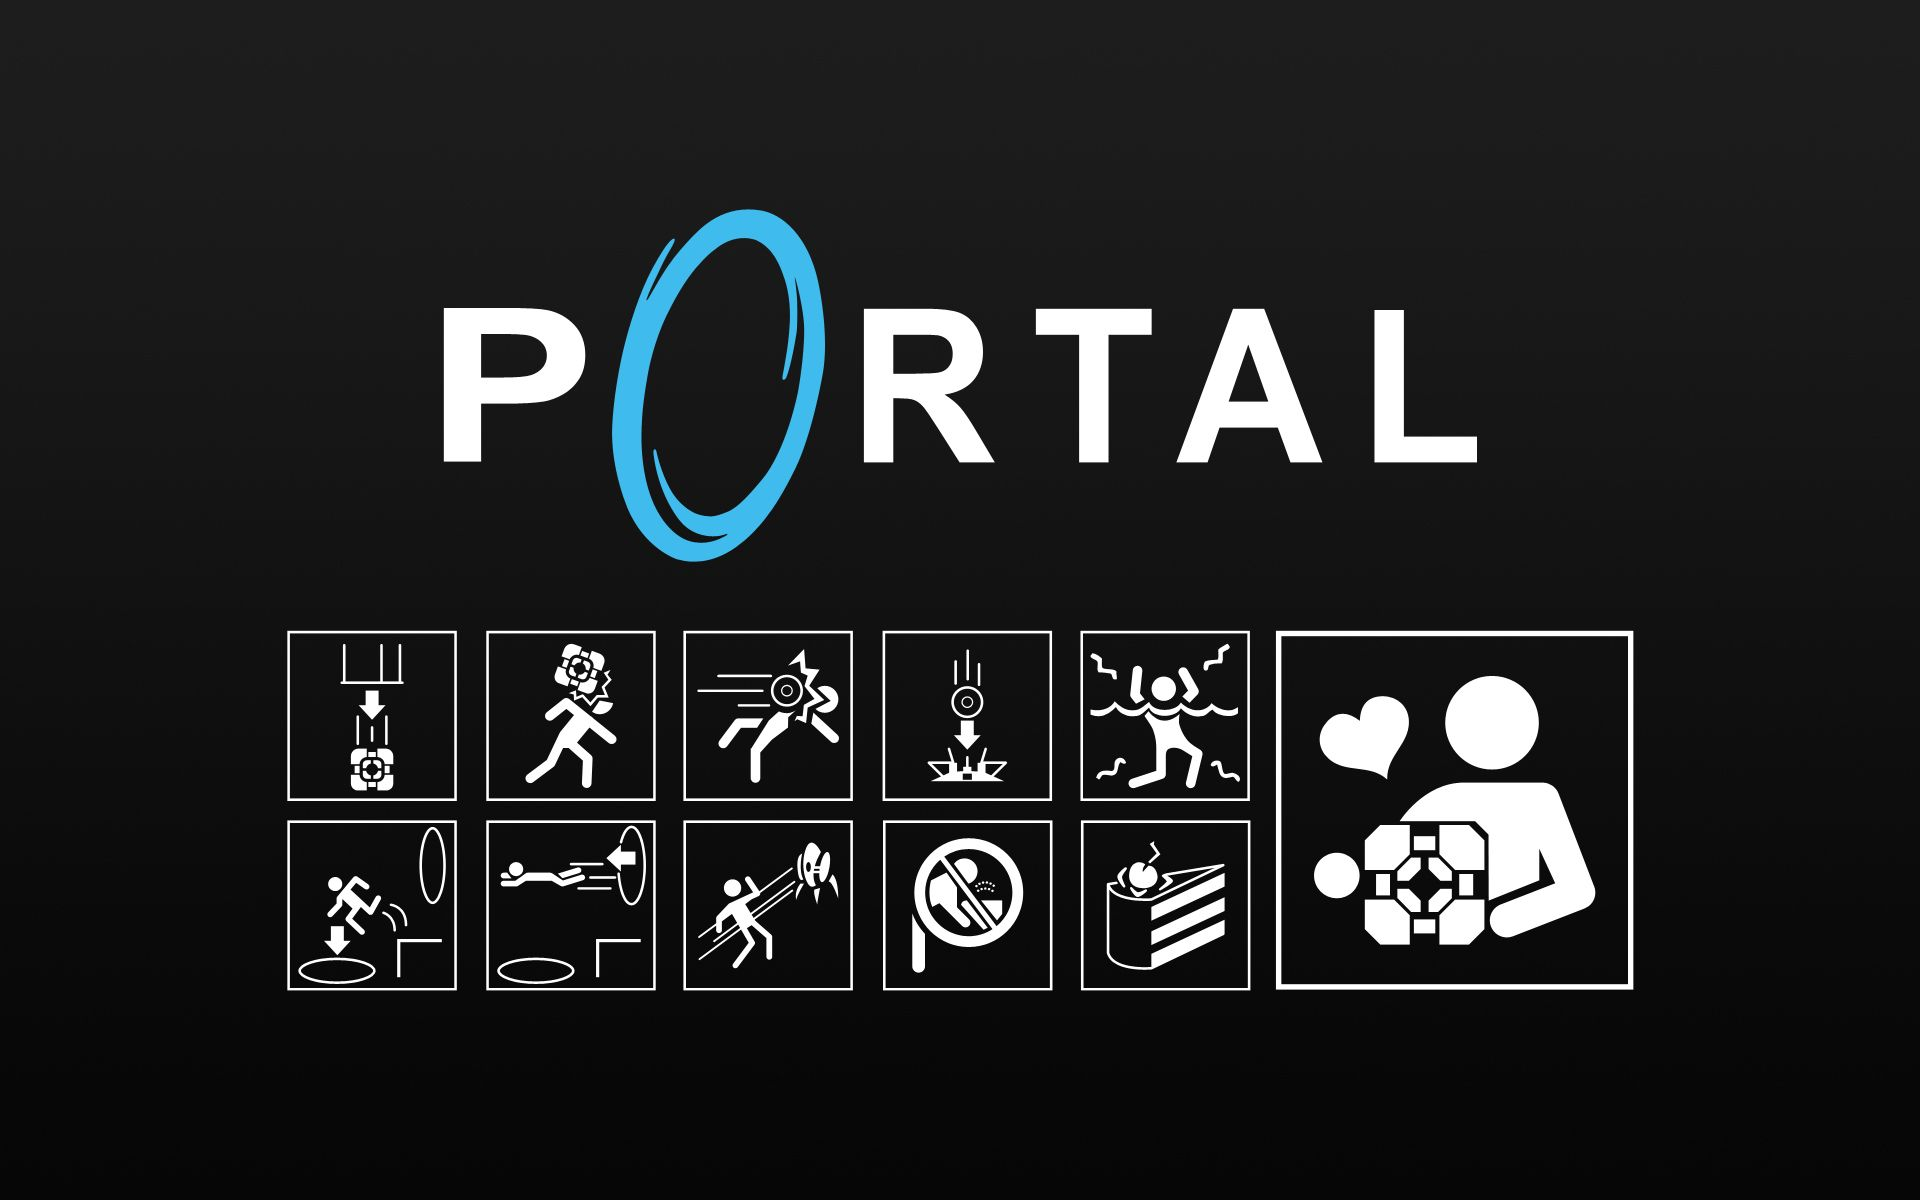 portal 2 wallpapers hd